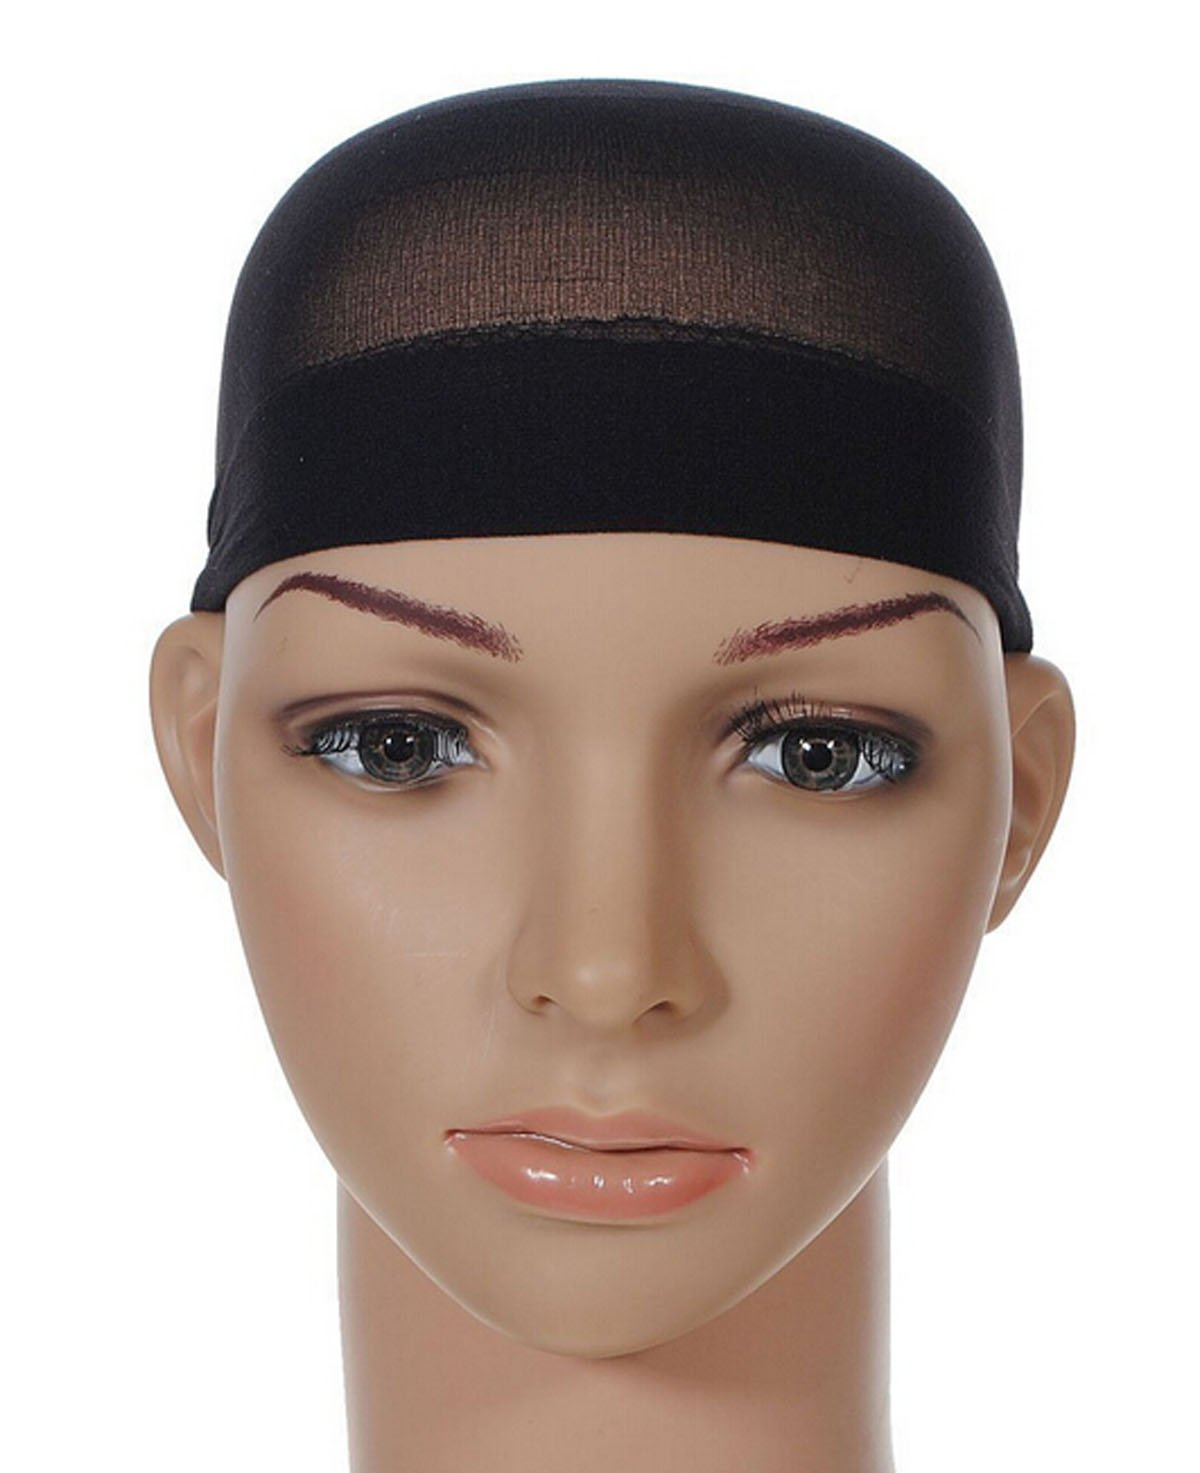 SuperWigy® High Quality Cheap Sale Unisex Stocking Wig Cap Liner Free Shipping (Black)